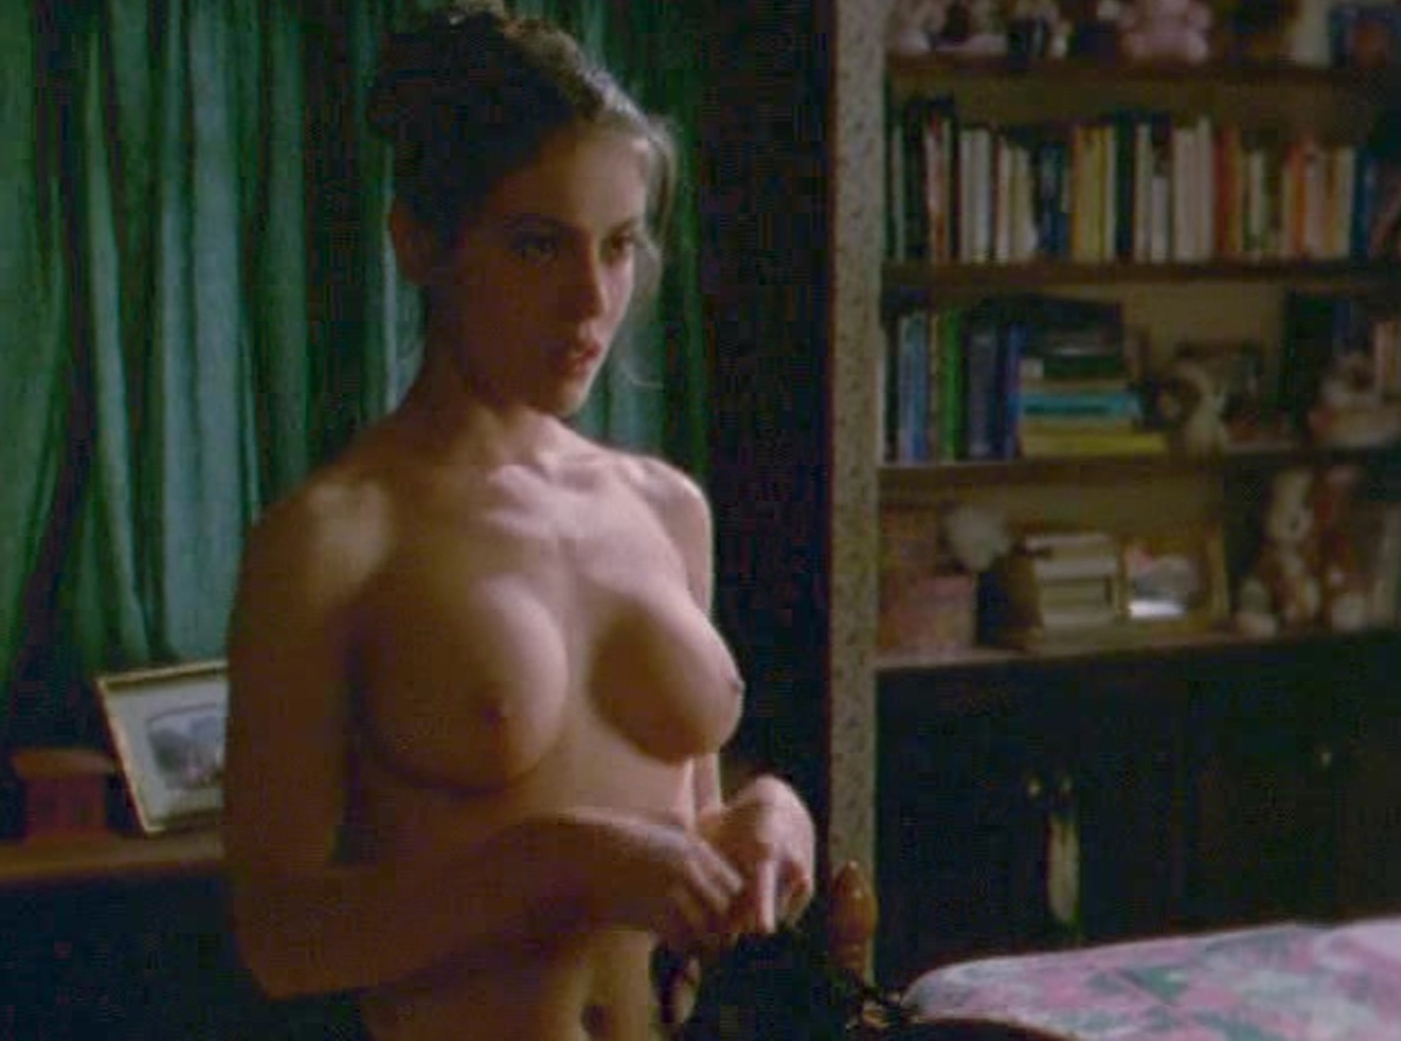 Alyssa milano sexy photo shoot video